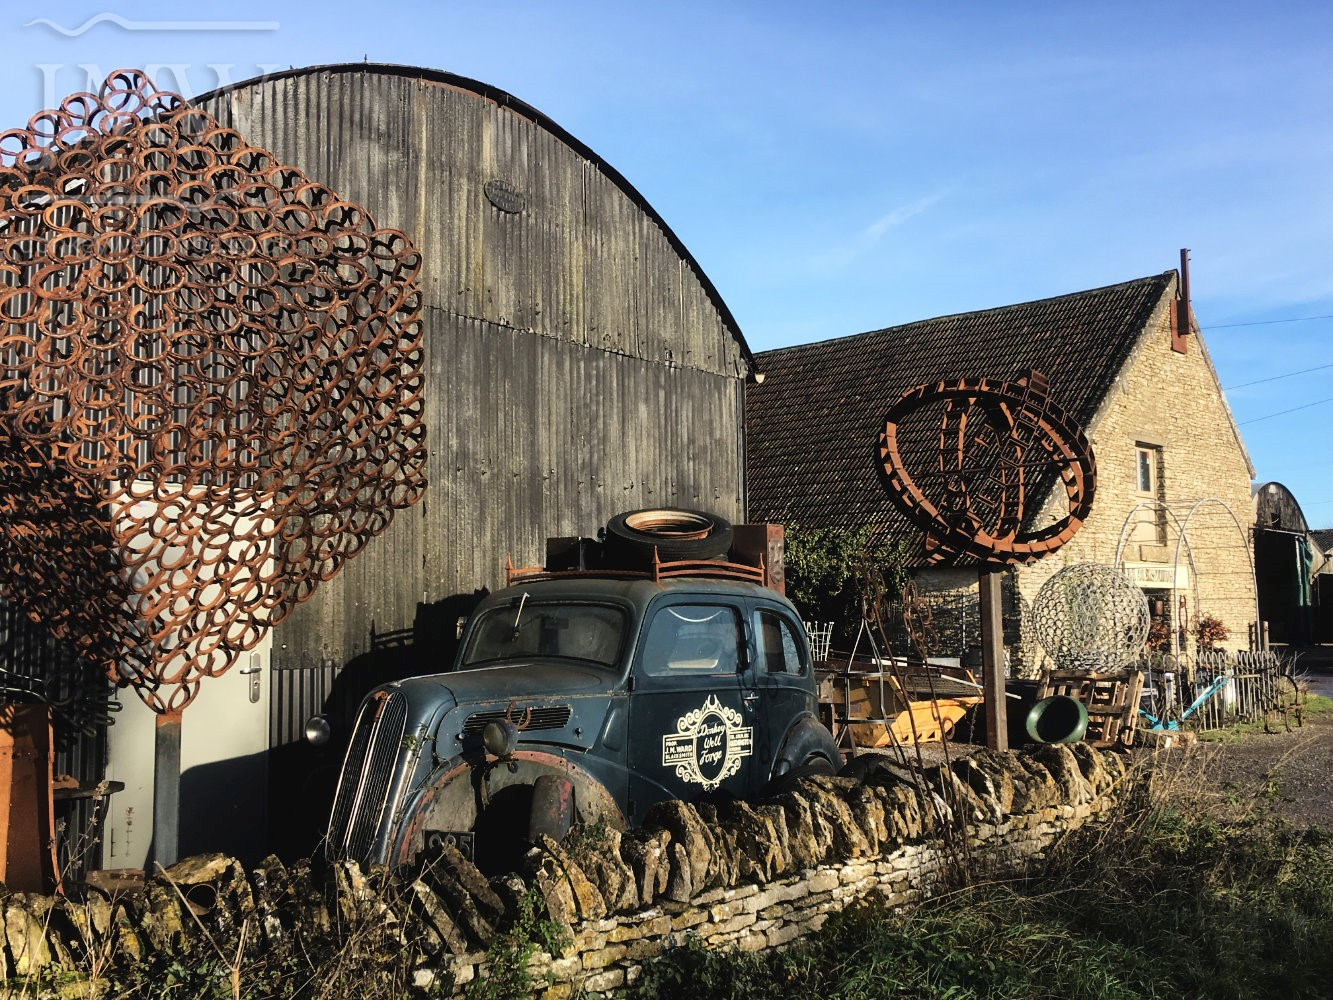 vintage-car-iron-artwork-donkeywell-forge-blacksmith-gloucestershire